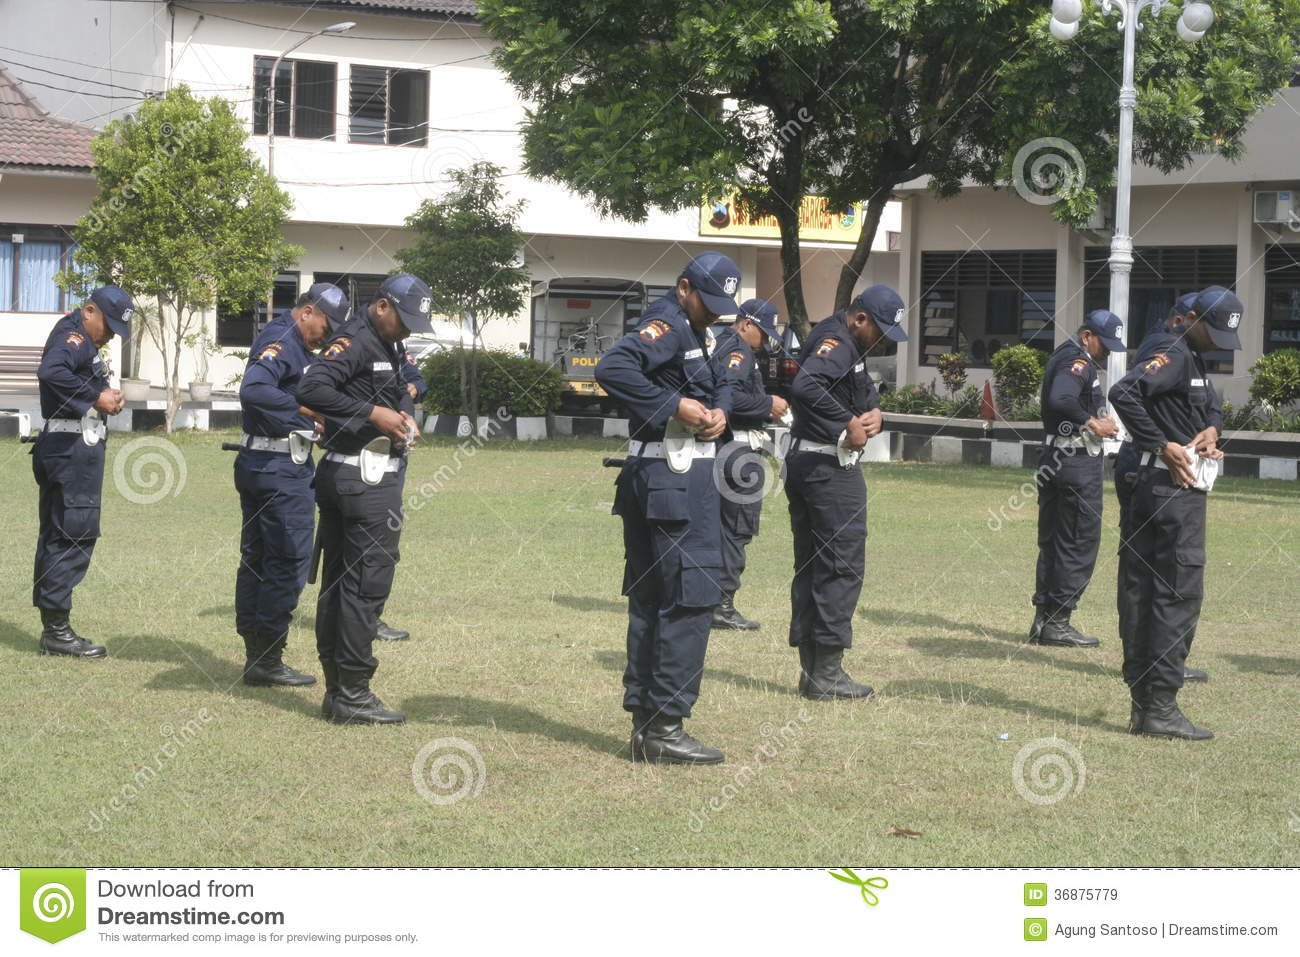 Exercise Unit Safety Officers Police Headquarters Building in Surakarta